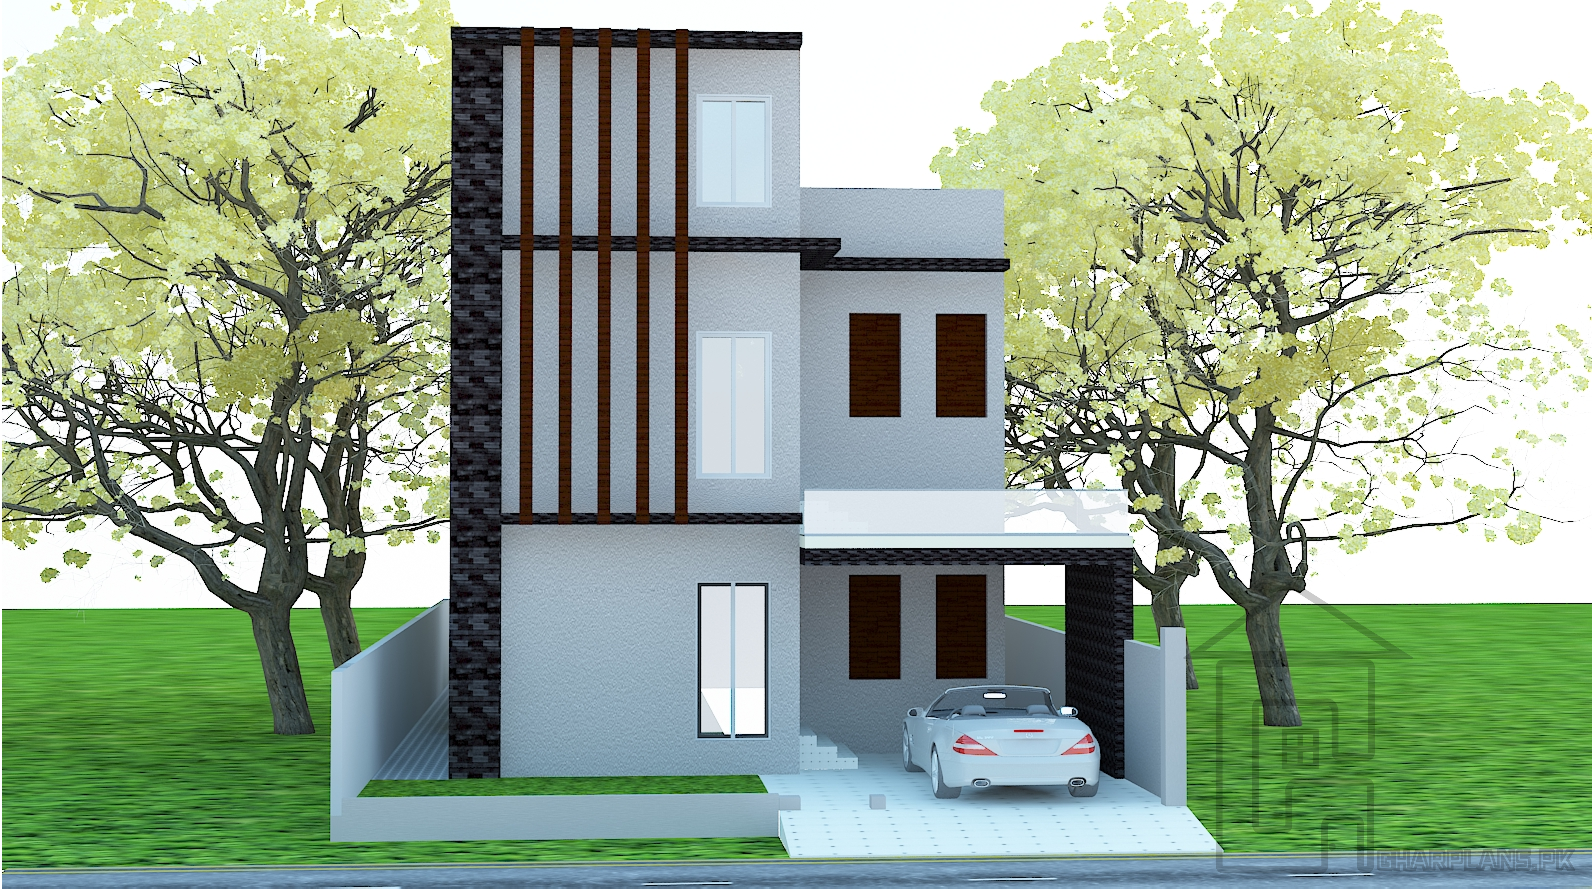 House Front Layout Design Home Layout Design Small House Design House Layout Plans